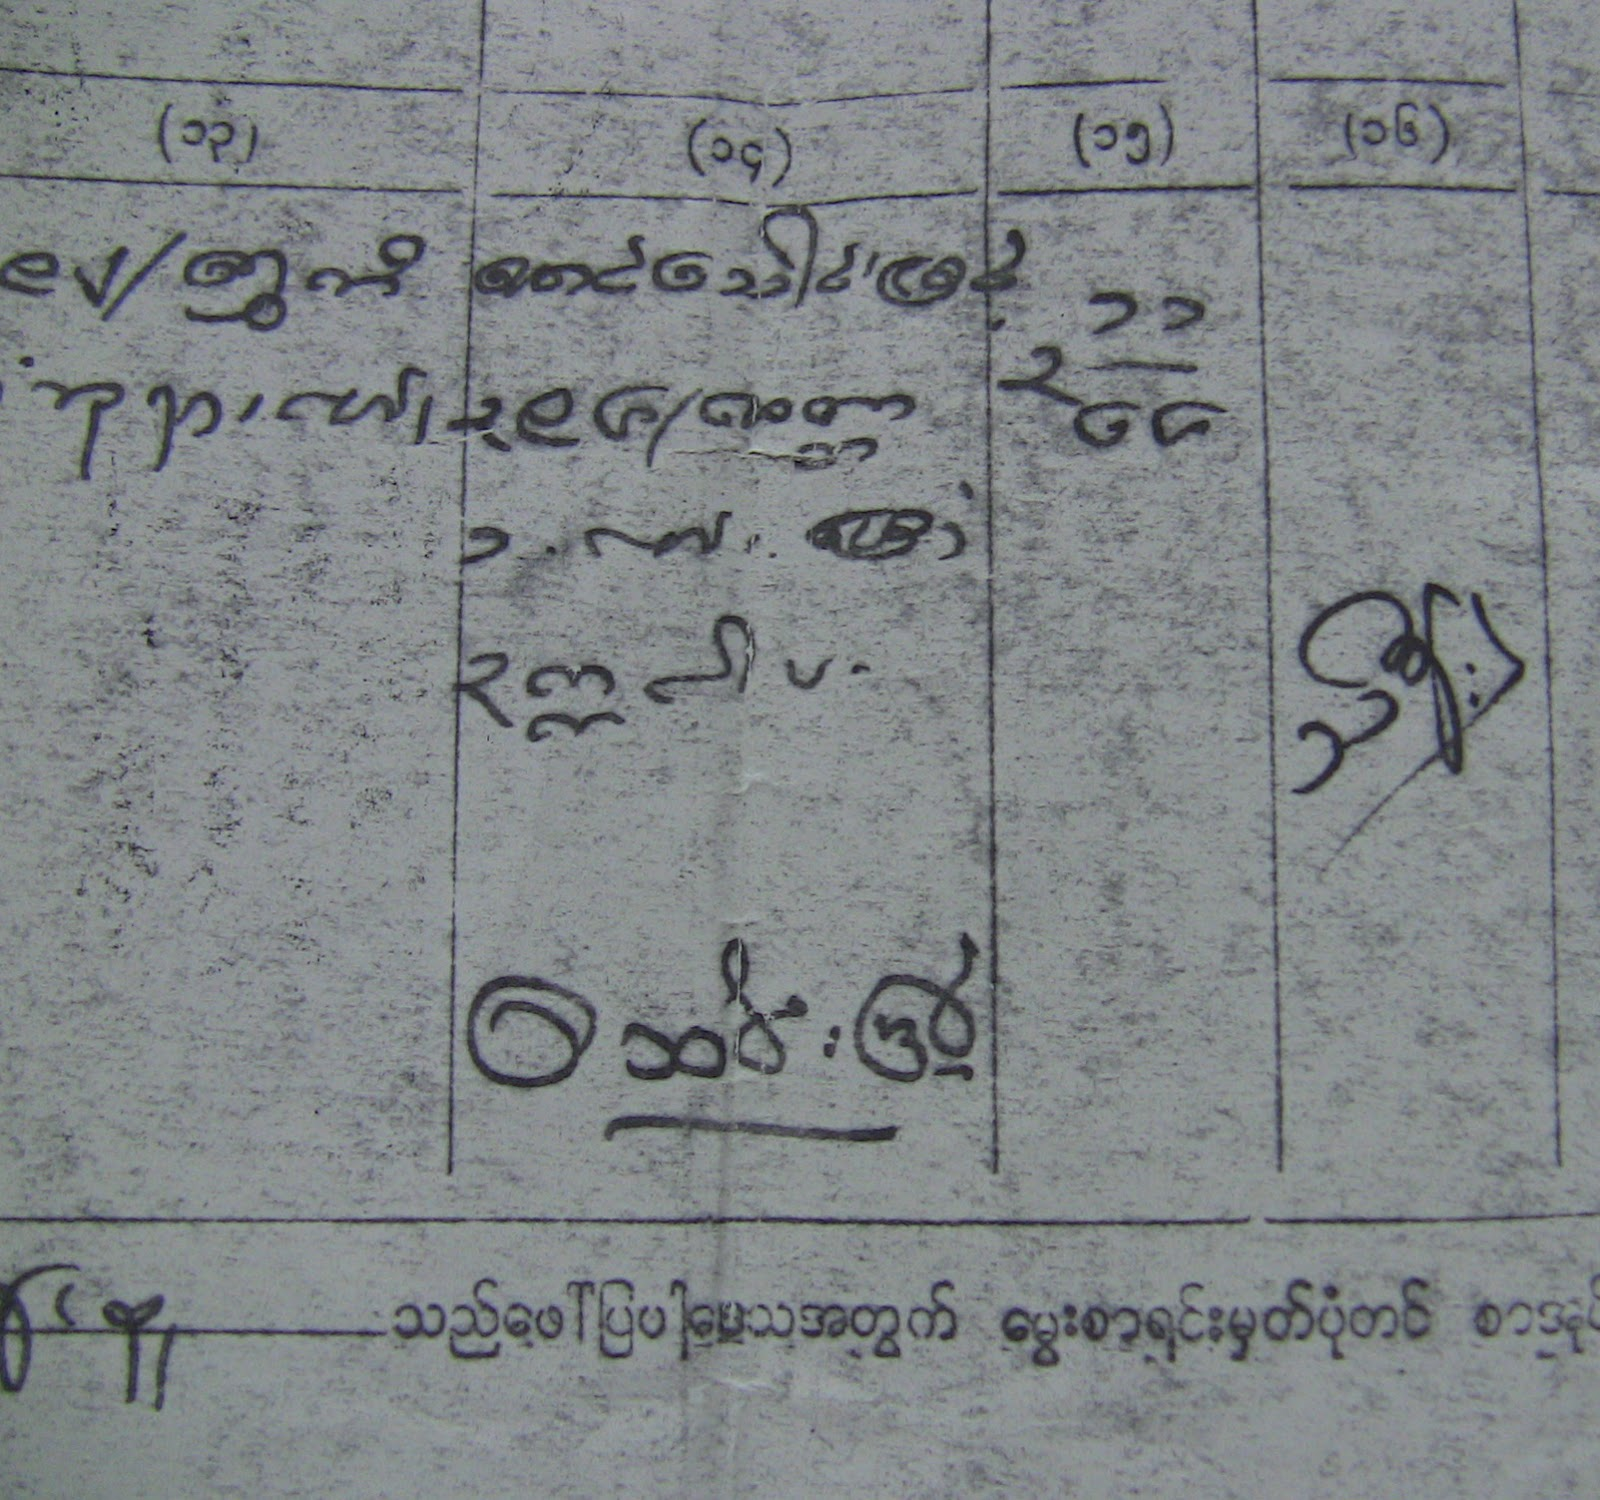 Kweejibo stories march 2013 the burmese birth certificate story dont worry you can probably get a new birth certificate with whatever name you want in burma for ten dollars 1betcityfo Image collections